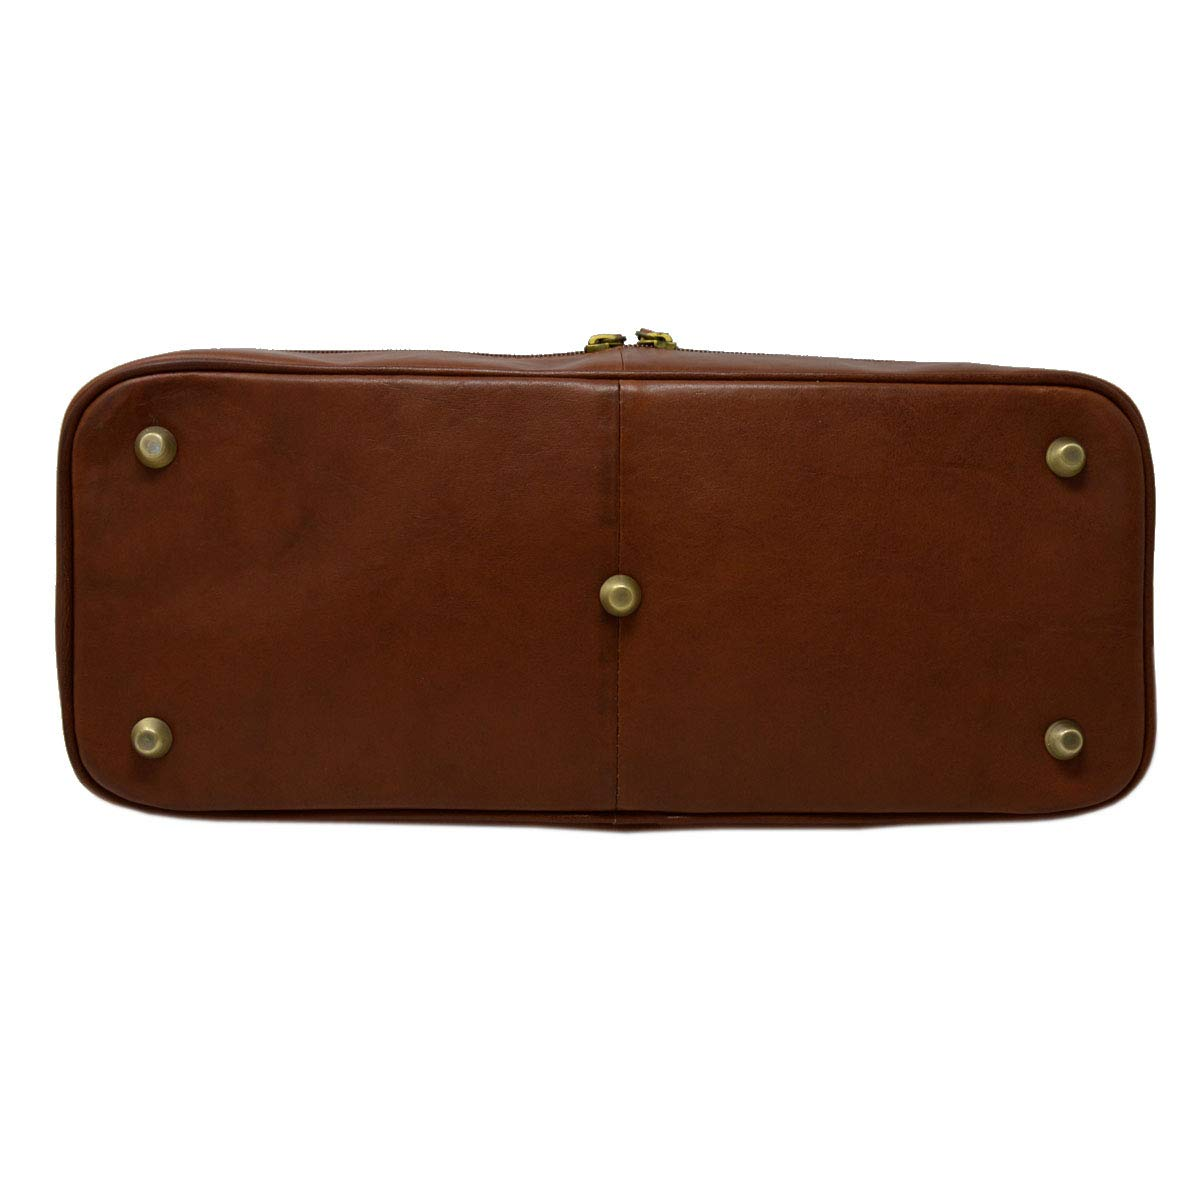 X À Homme 15 Main Marron Dream 27 BagsSac Pour Leather 39 wuPXkiOZT